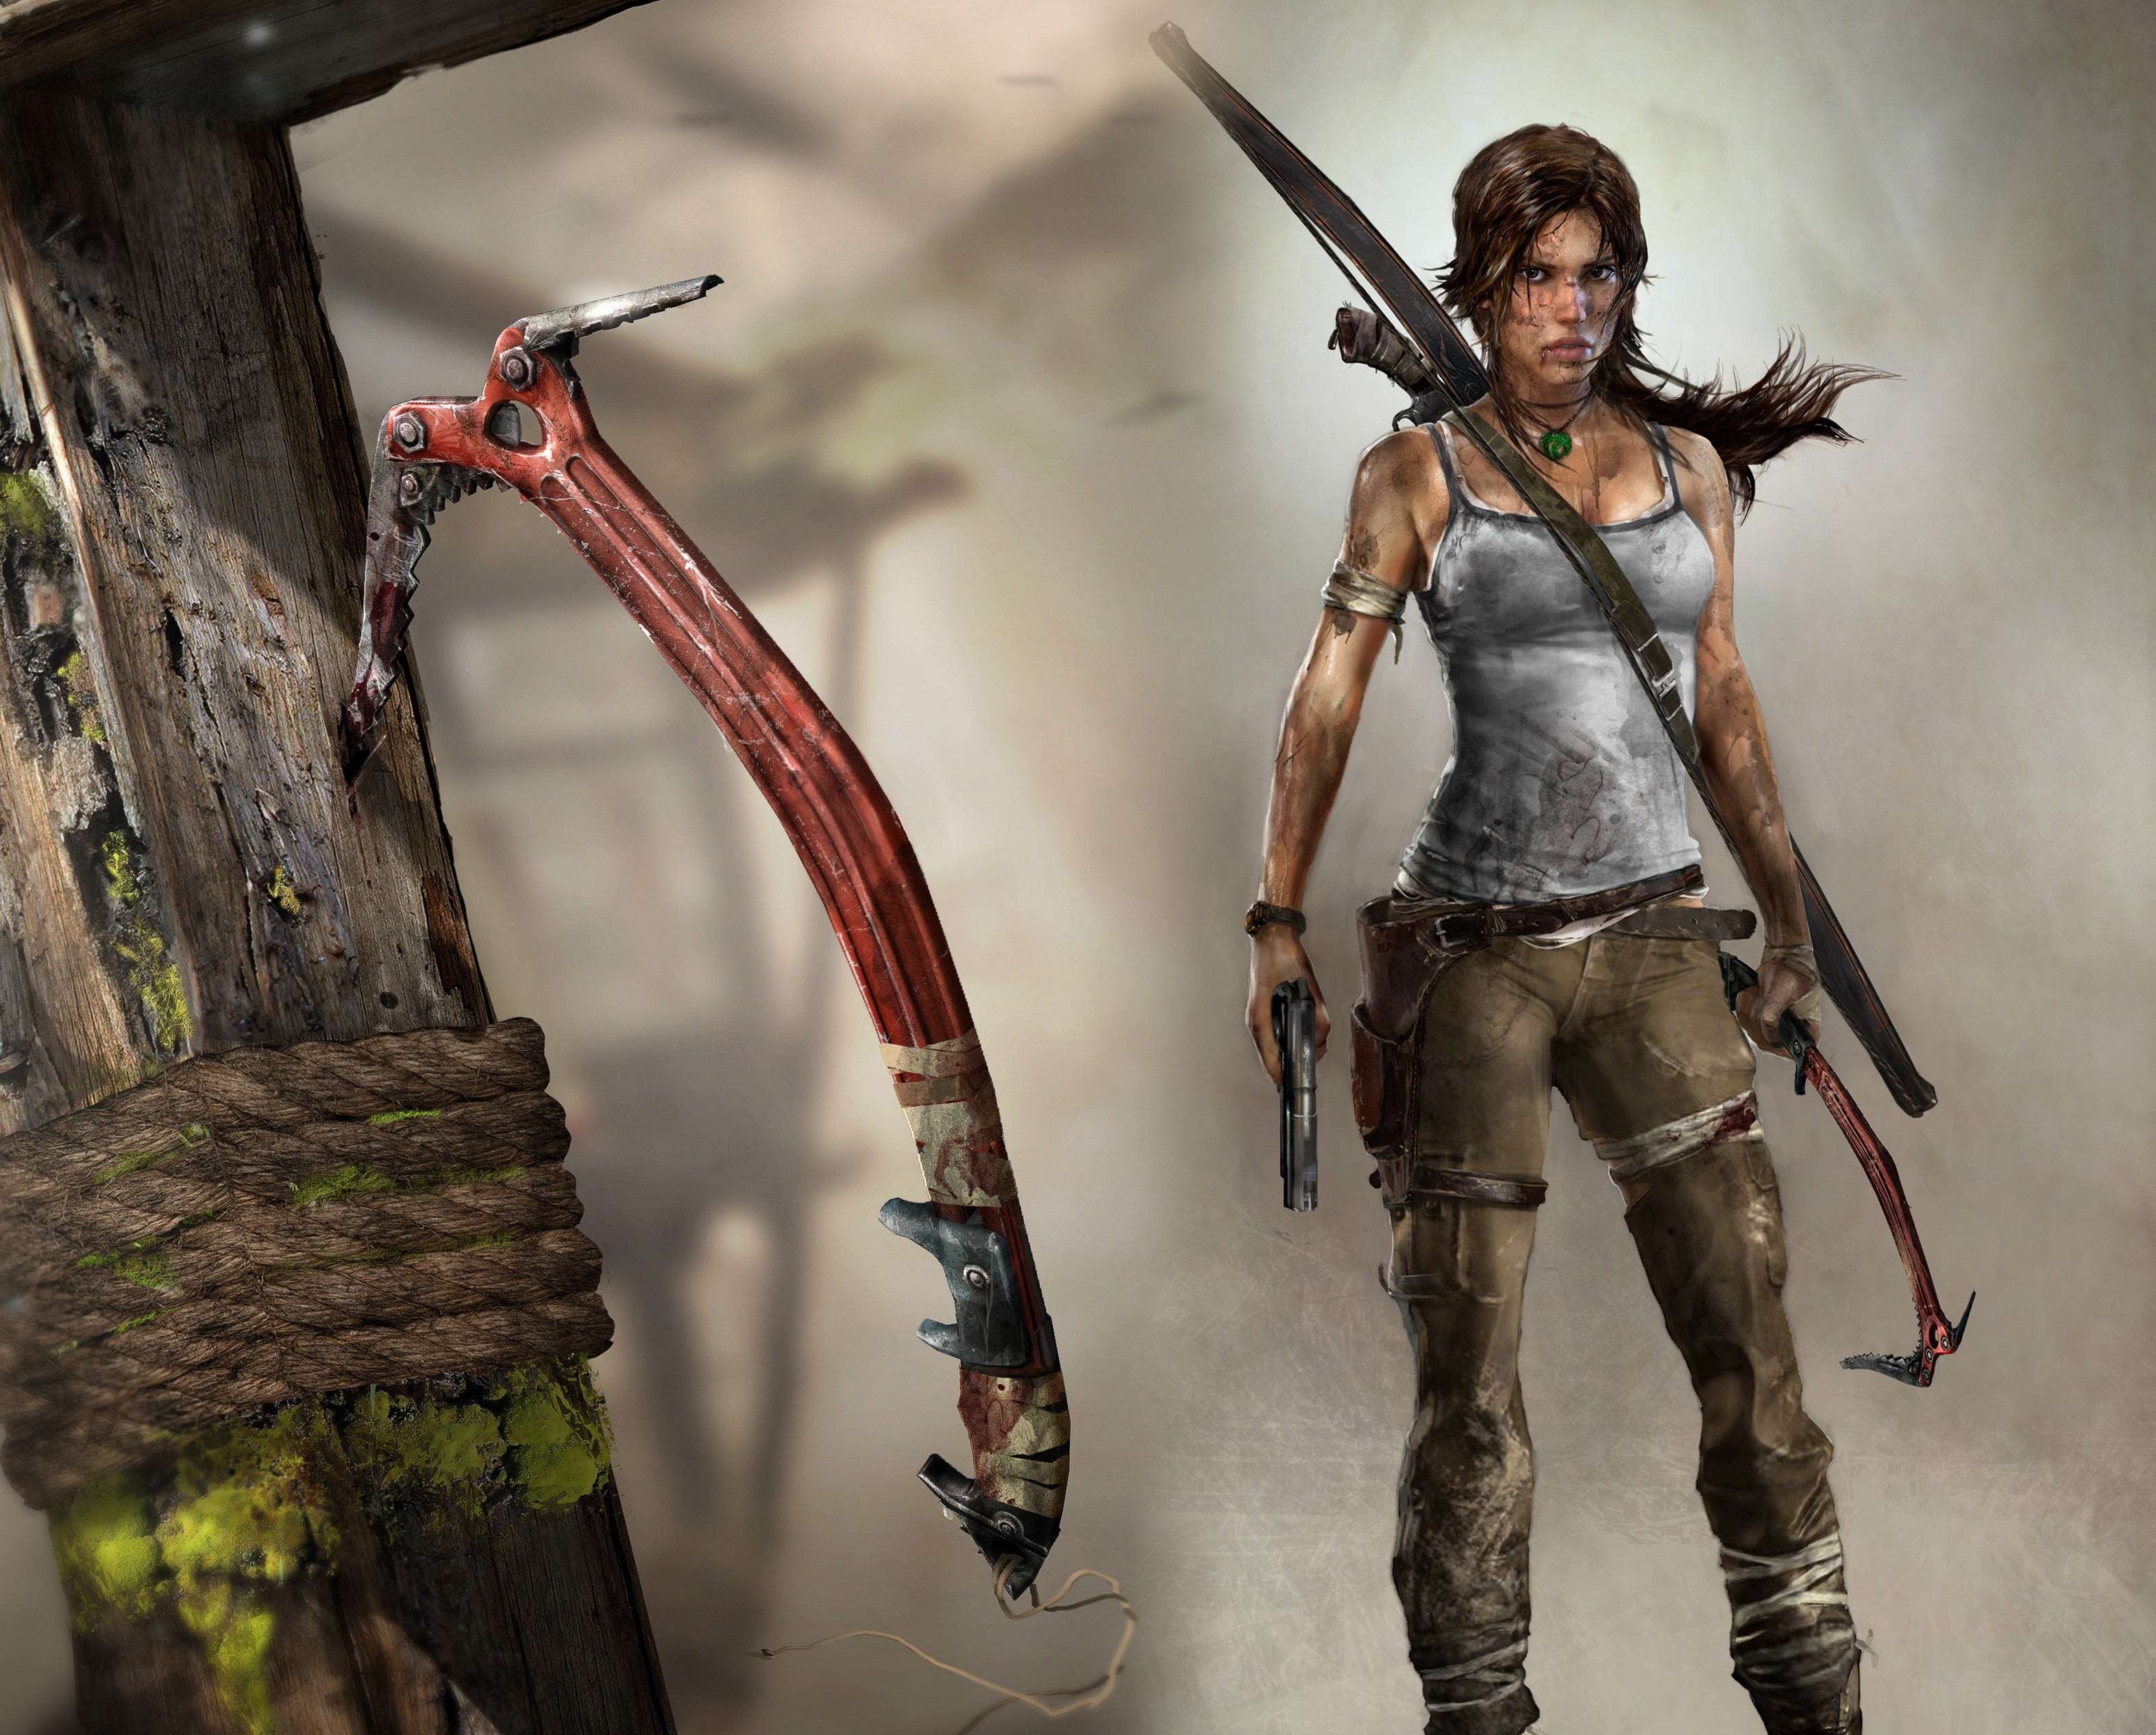 Hd Wallpaper Of Tomb Raider Picture Of Lara Croft Lara Croft